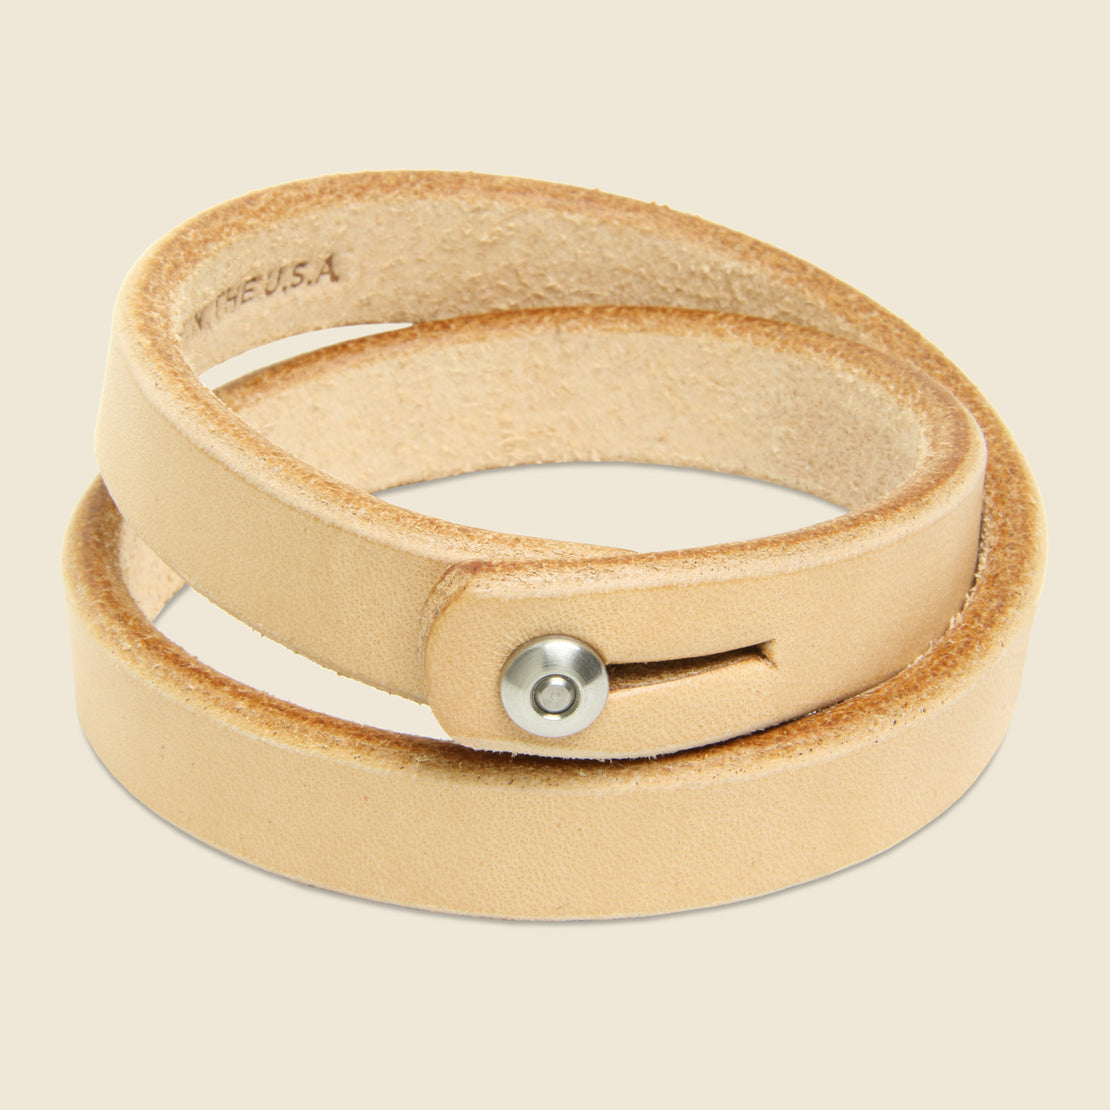 Tanner Double Wrap Wristband - Natural/Stainless